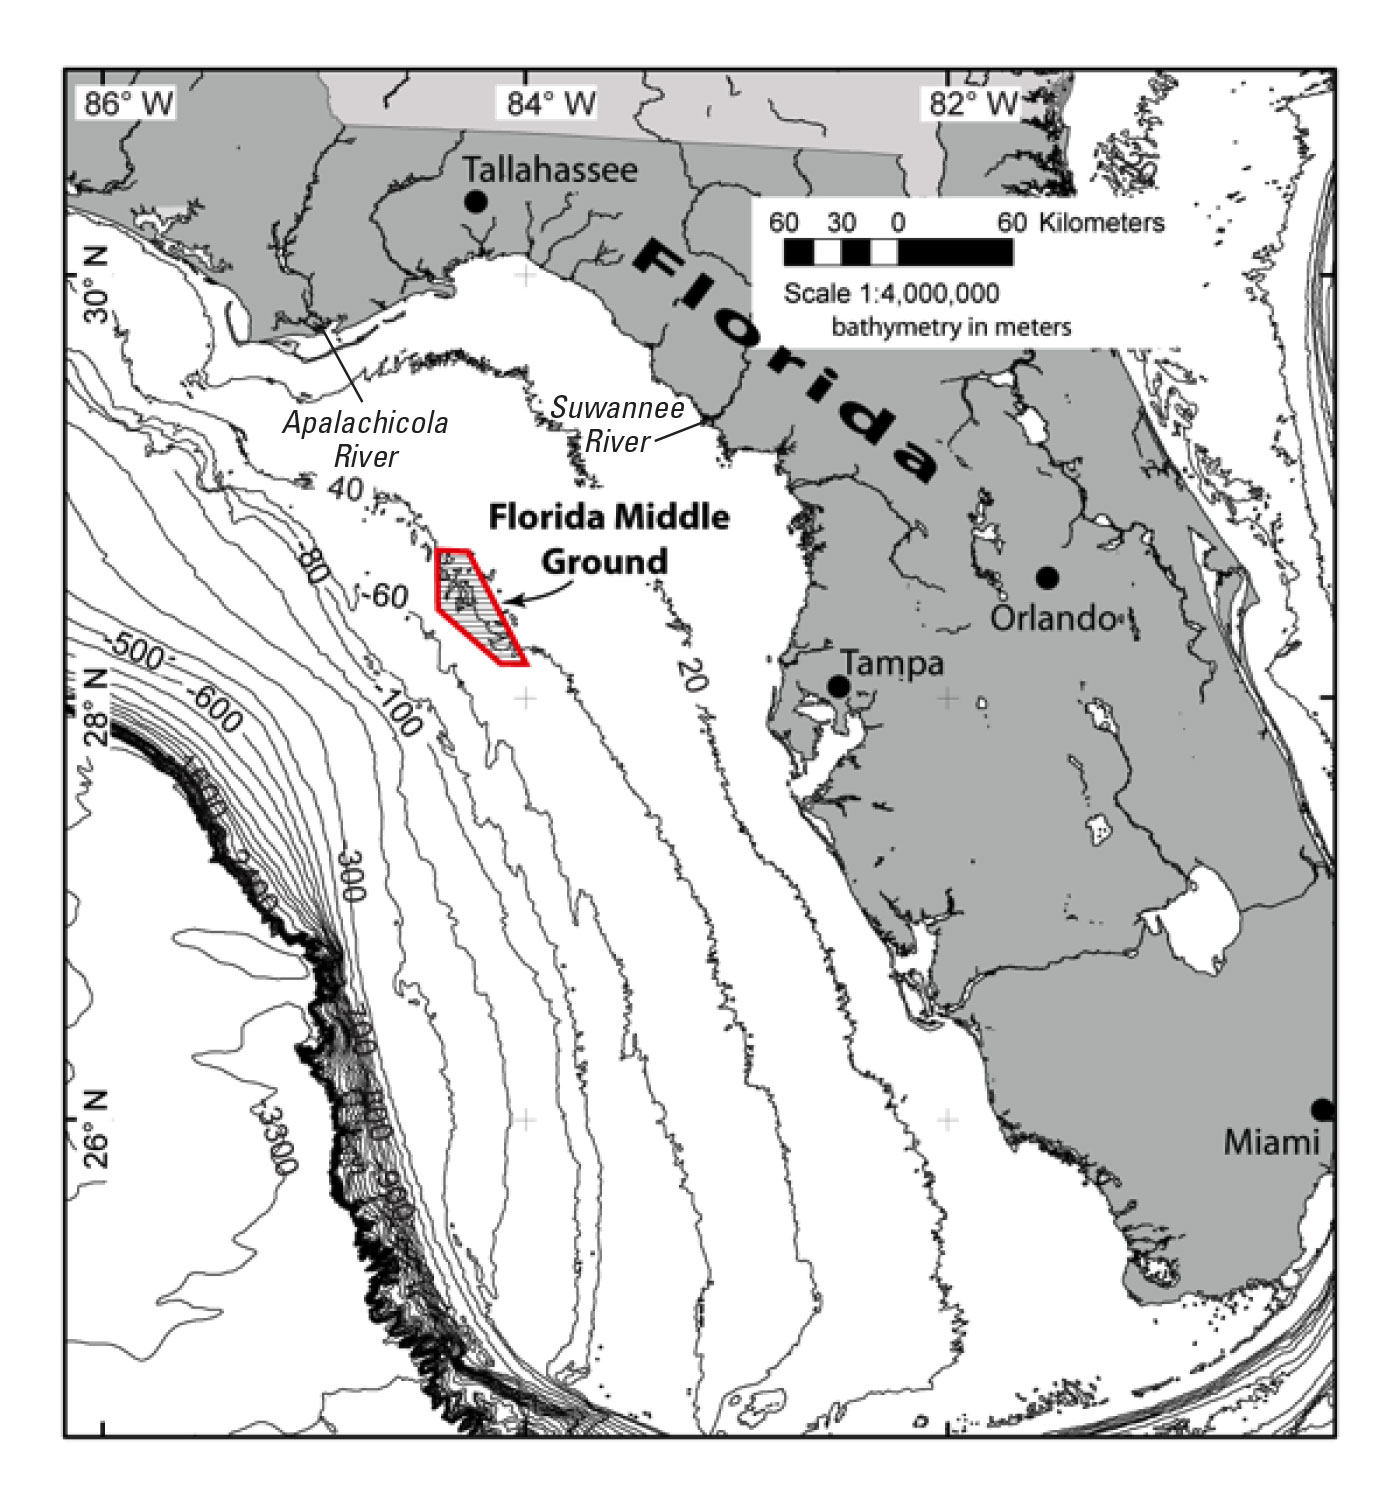 New Geologic Explanation For The Florida Middle Ground In The Gulf - Water Depth Map Florida